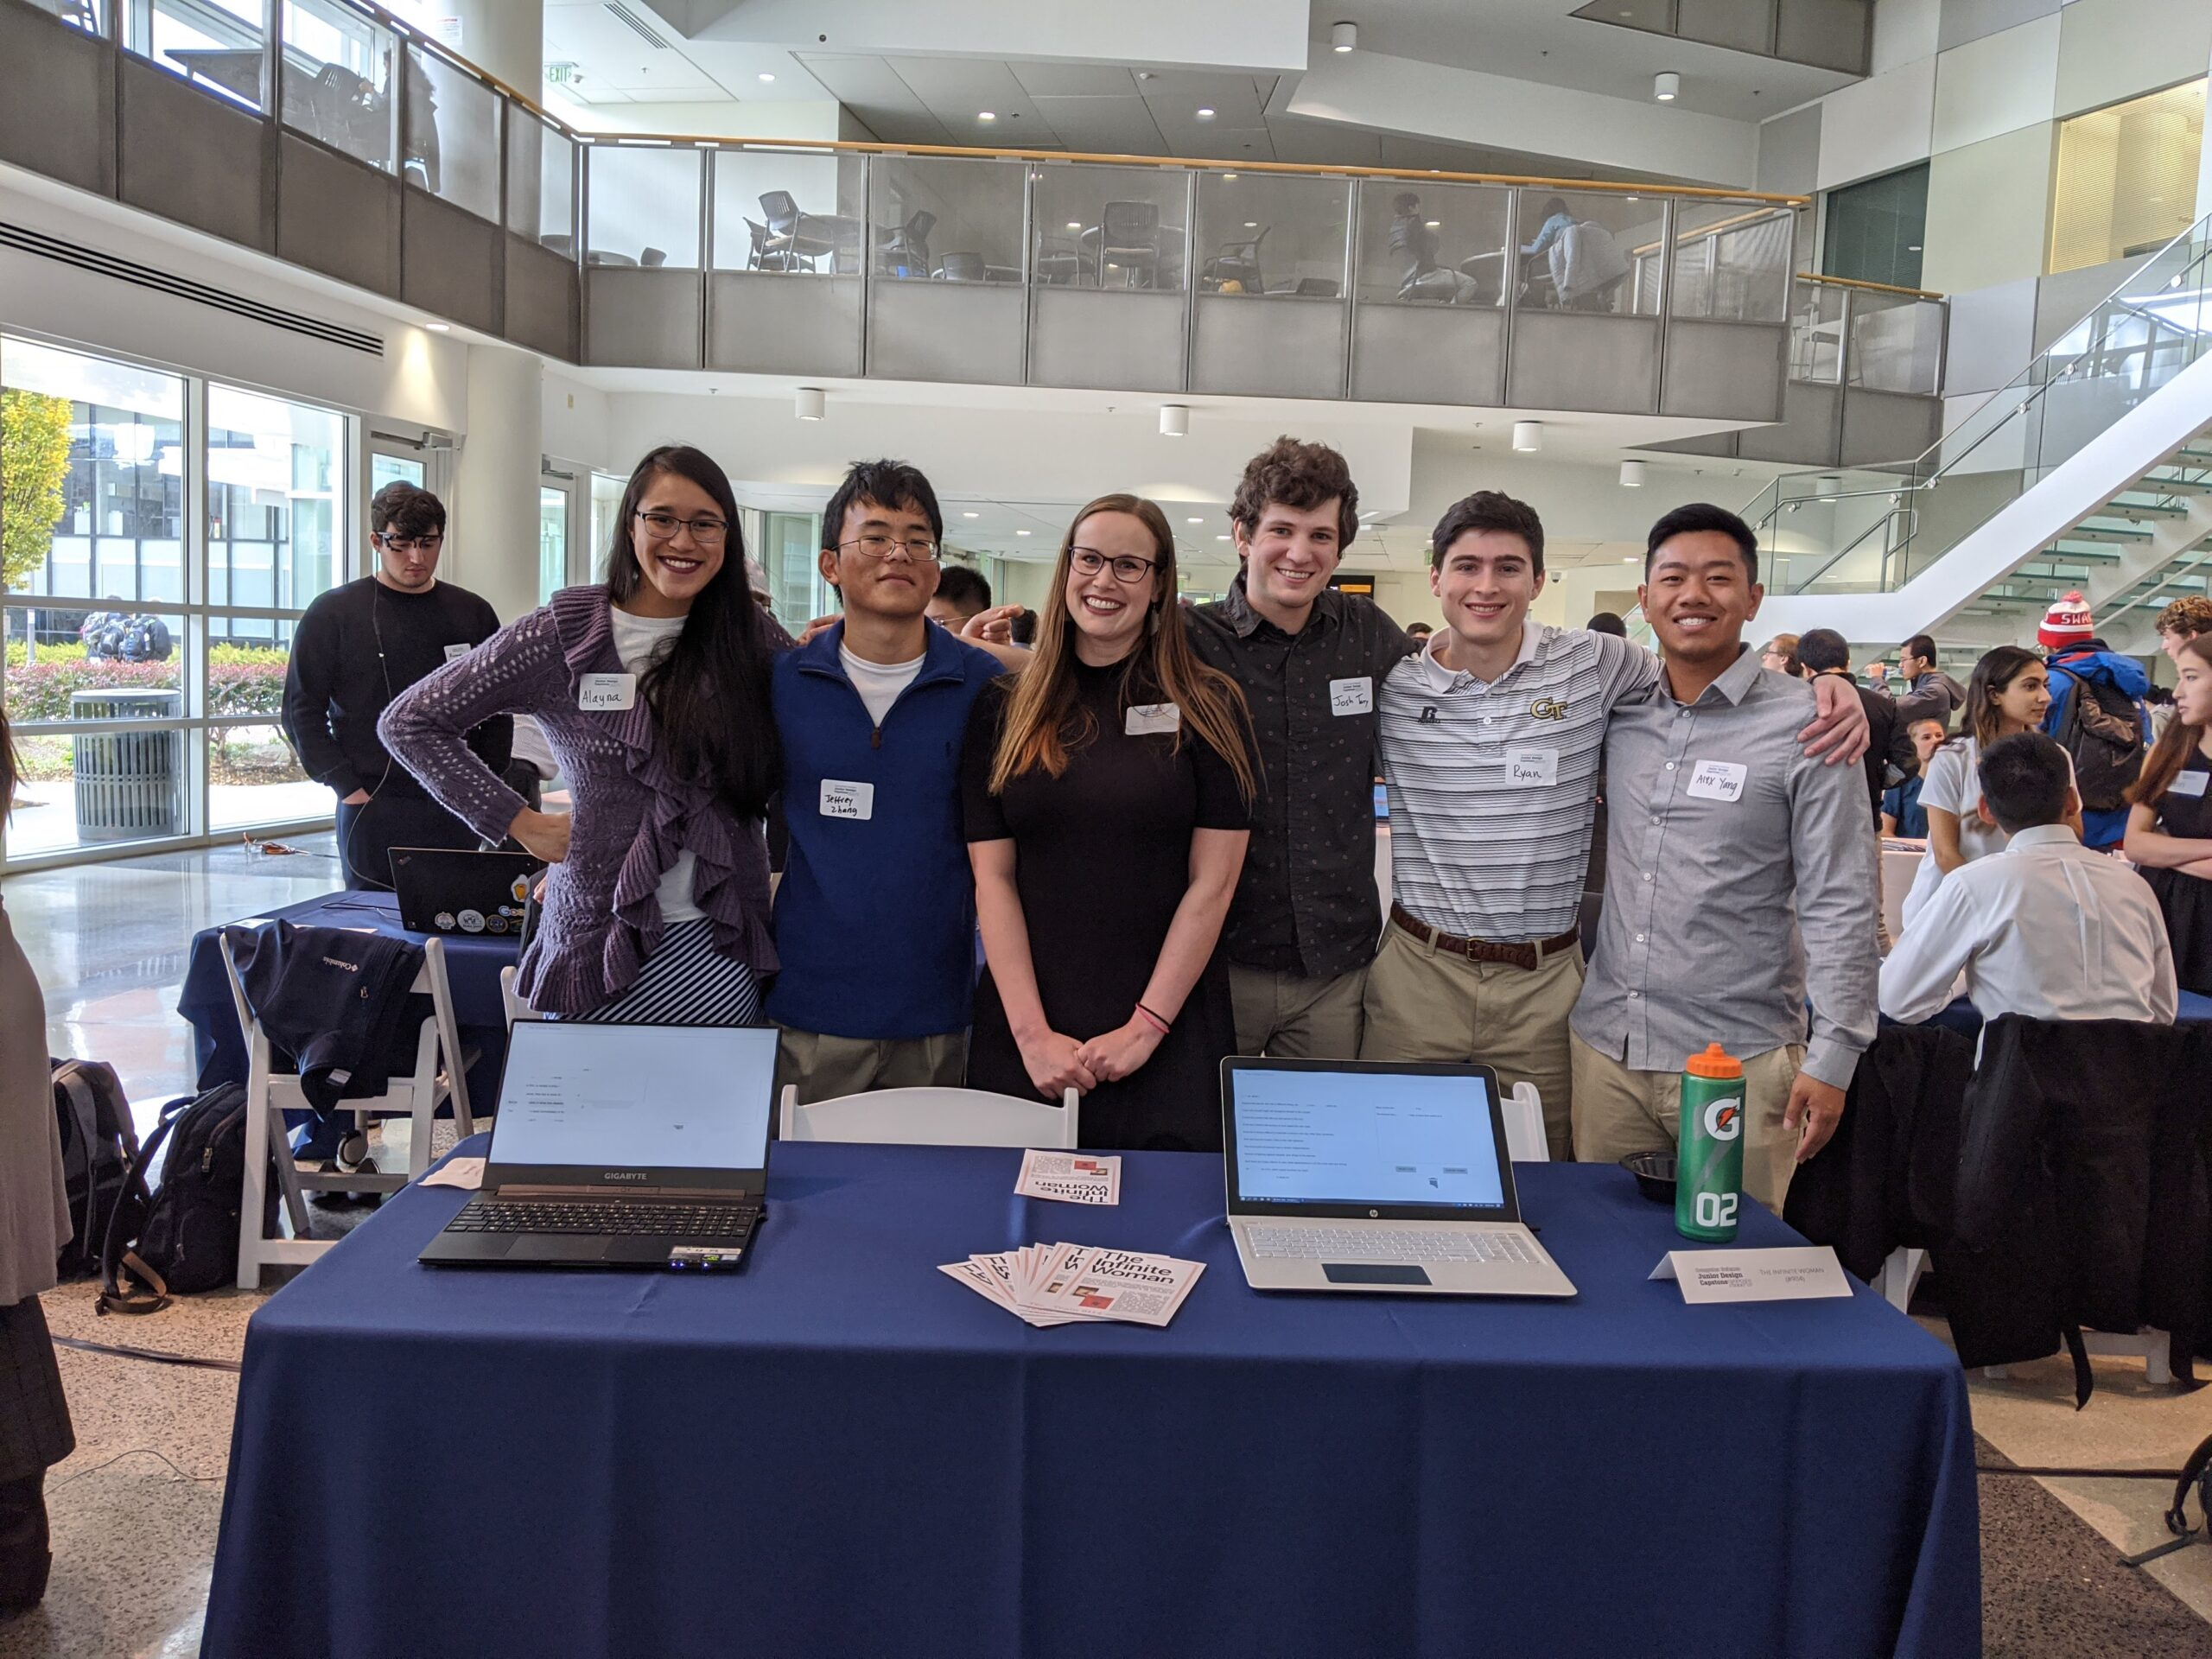 Six smiling people stand behind a table displaying laptops and brochures in a busy atrium.